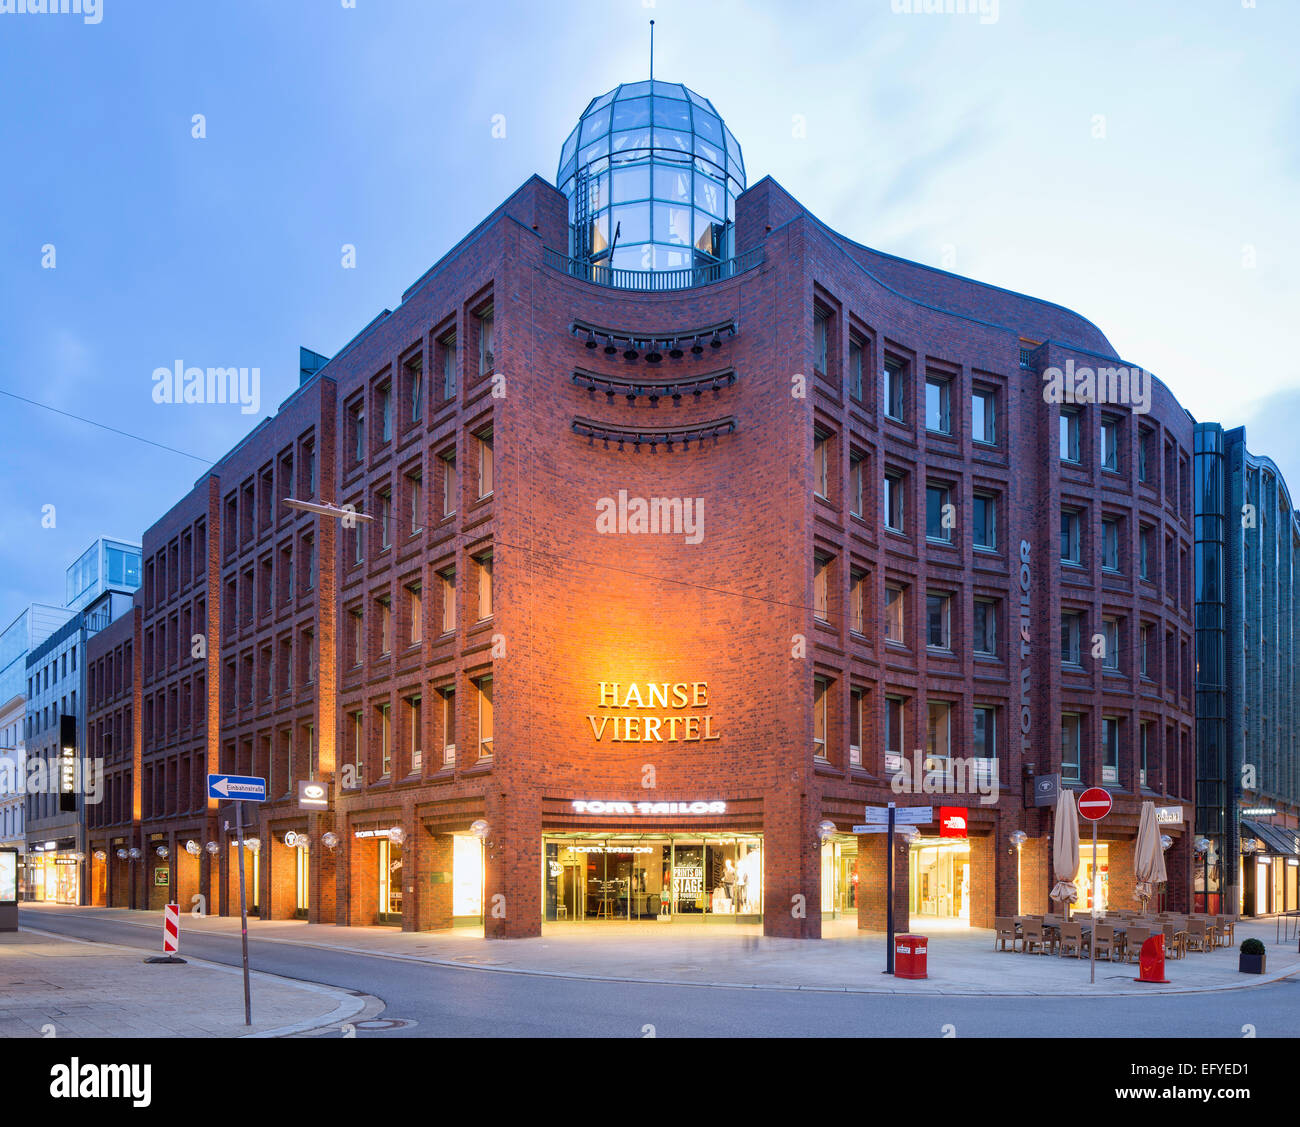 Shopping arcade Hanse-Viertel, office and commercial building, Hamburg, Germany - Stock Image